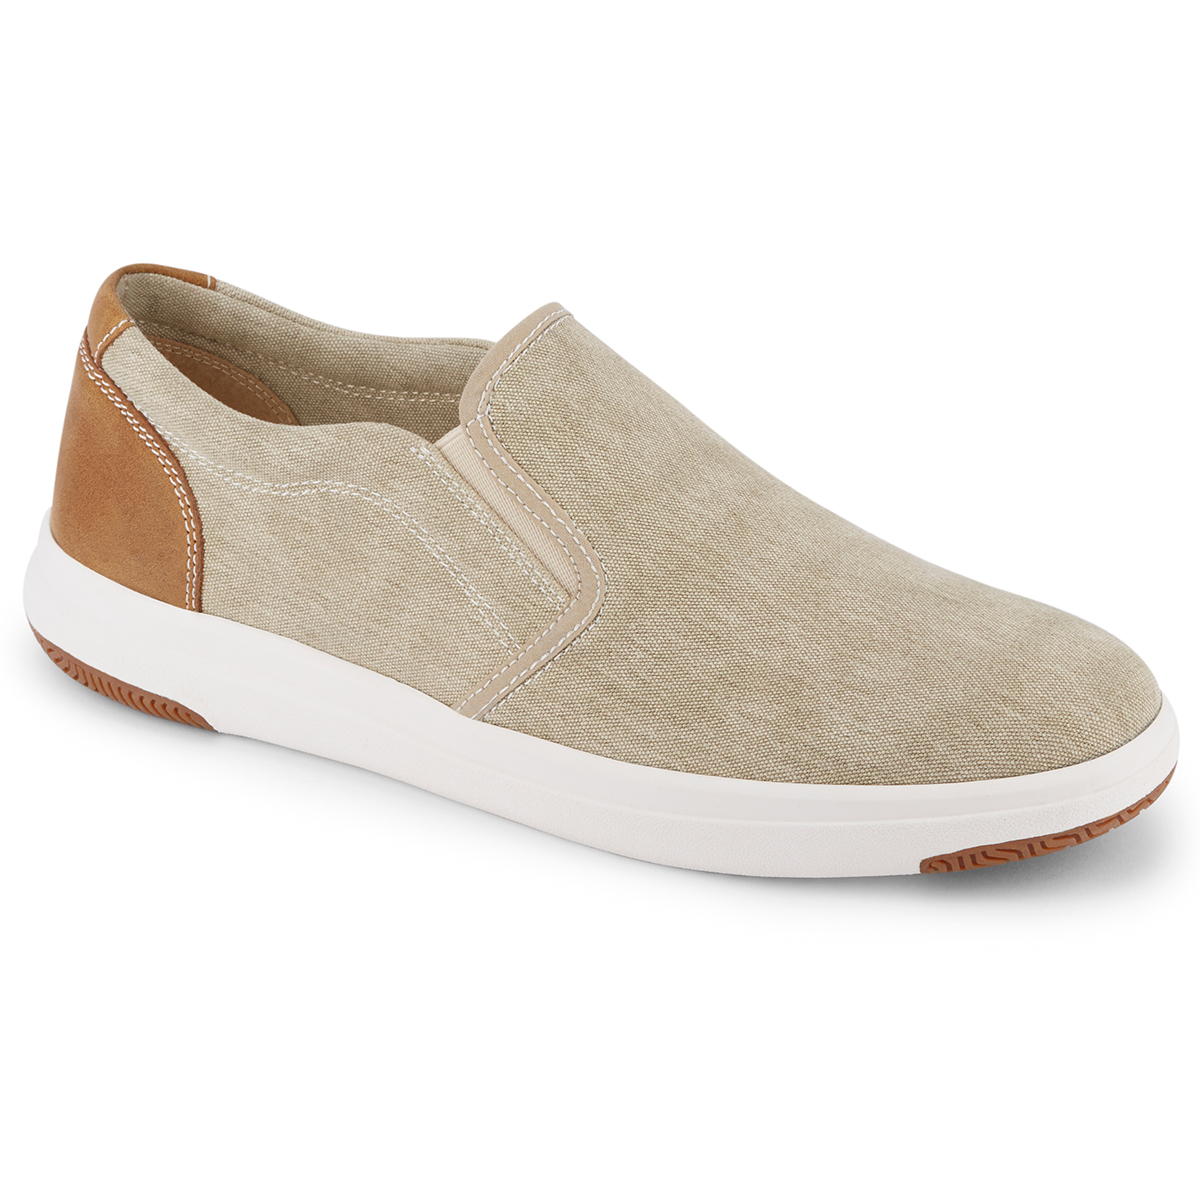 Dockers Men's Nobel Canvas Slip On Sneaker - Brown, 9